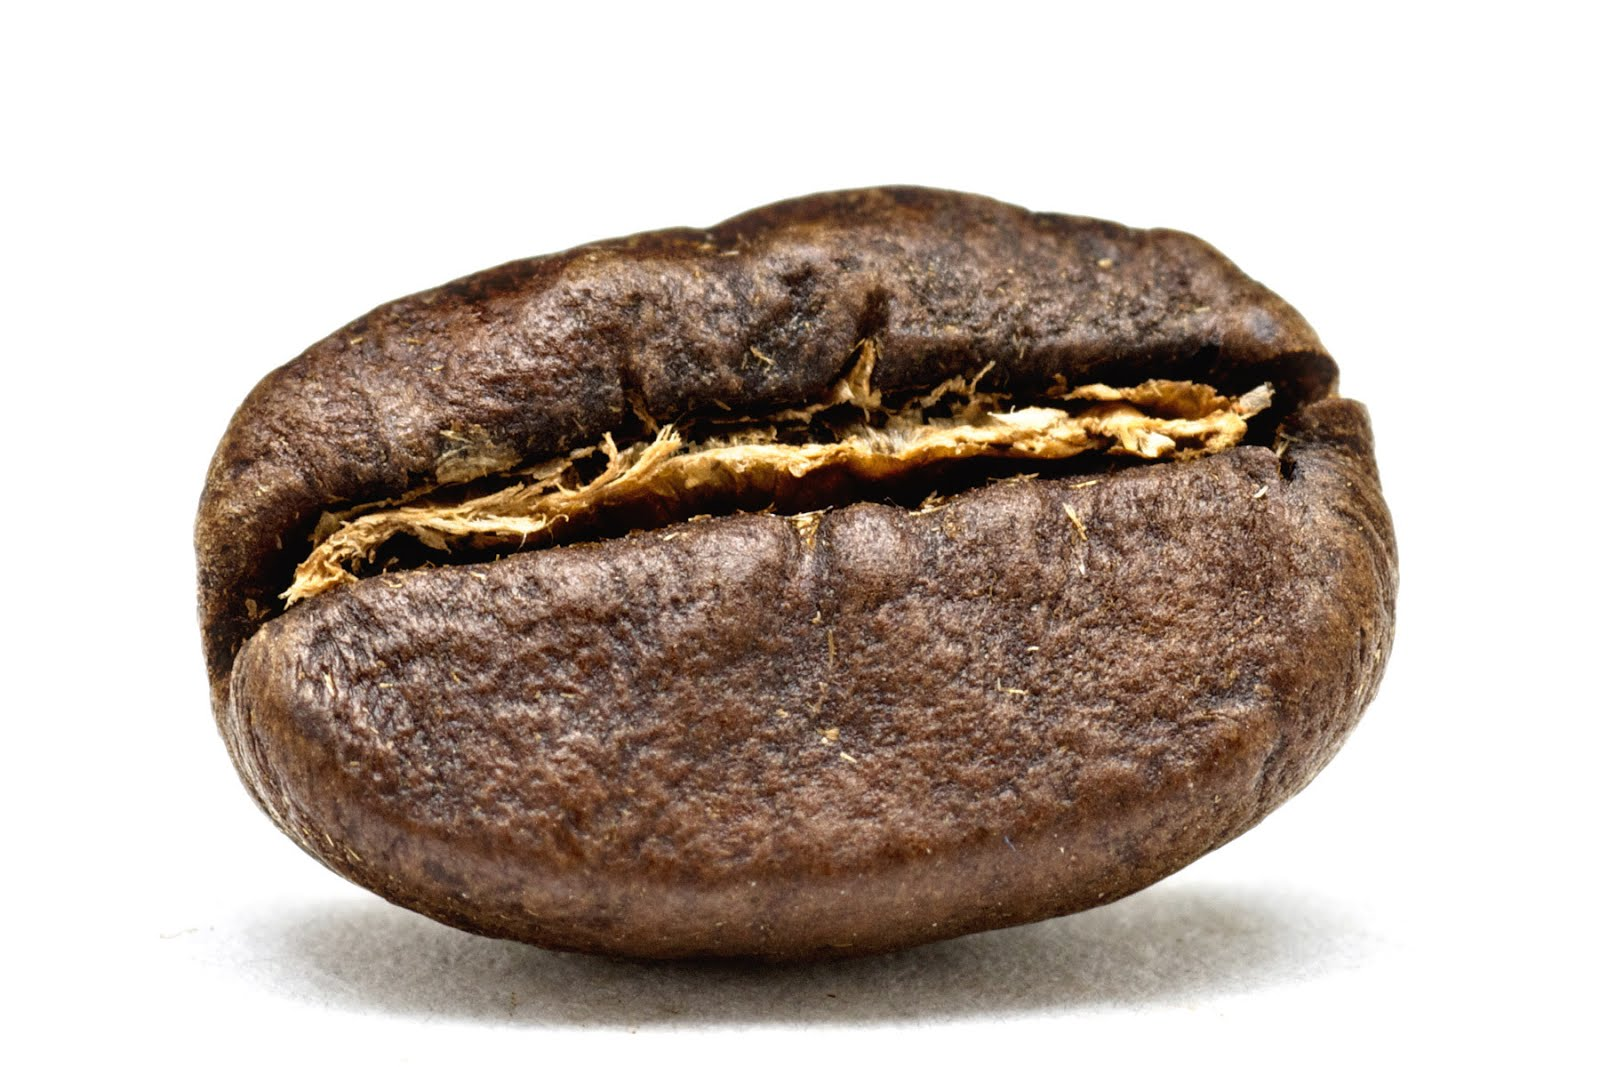 http://www.11roasters.com/data/photos/15_1kenya_coffee_bean.jpg